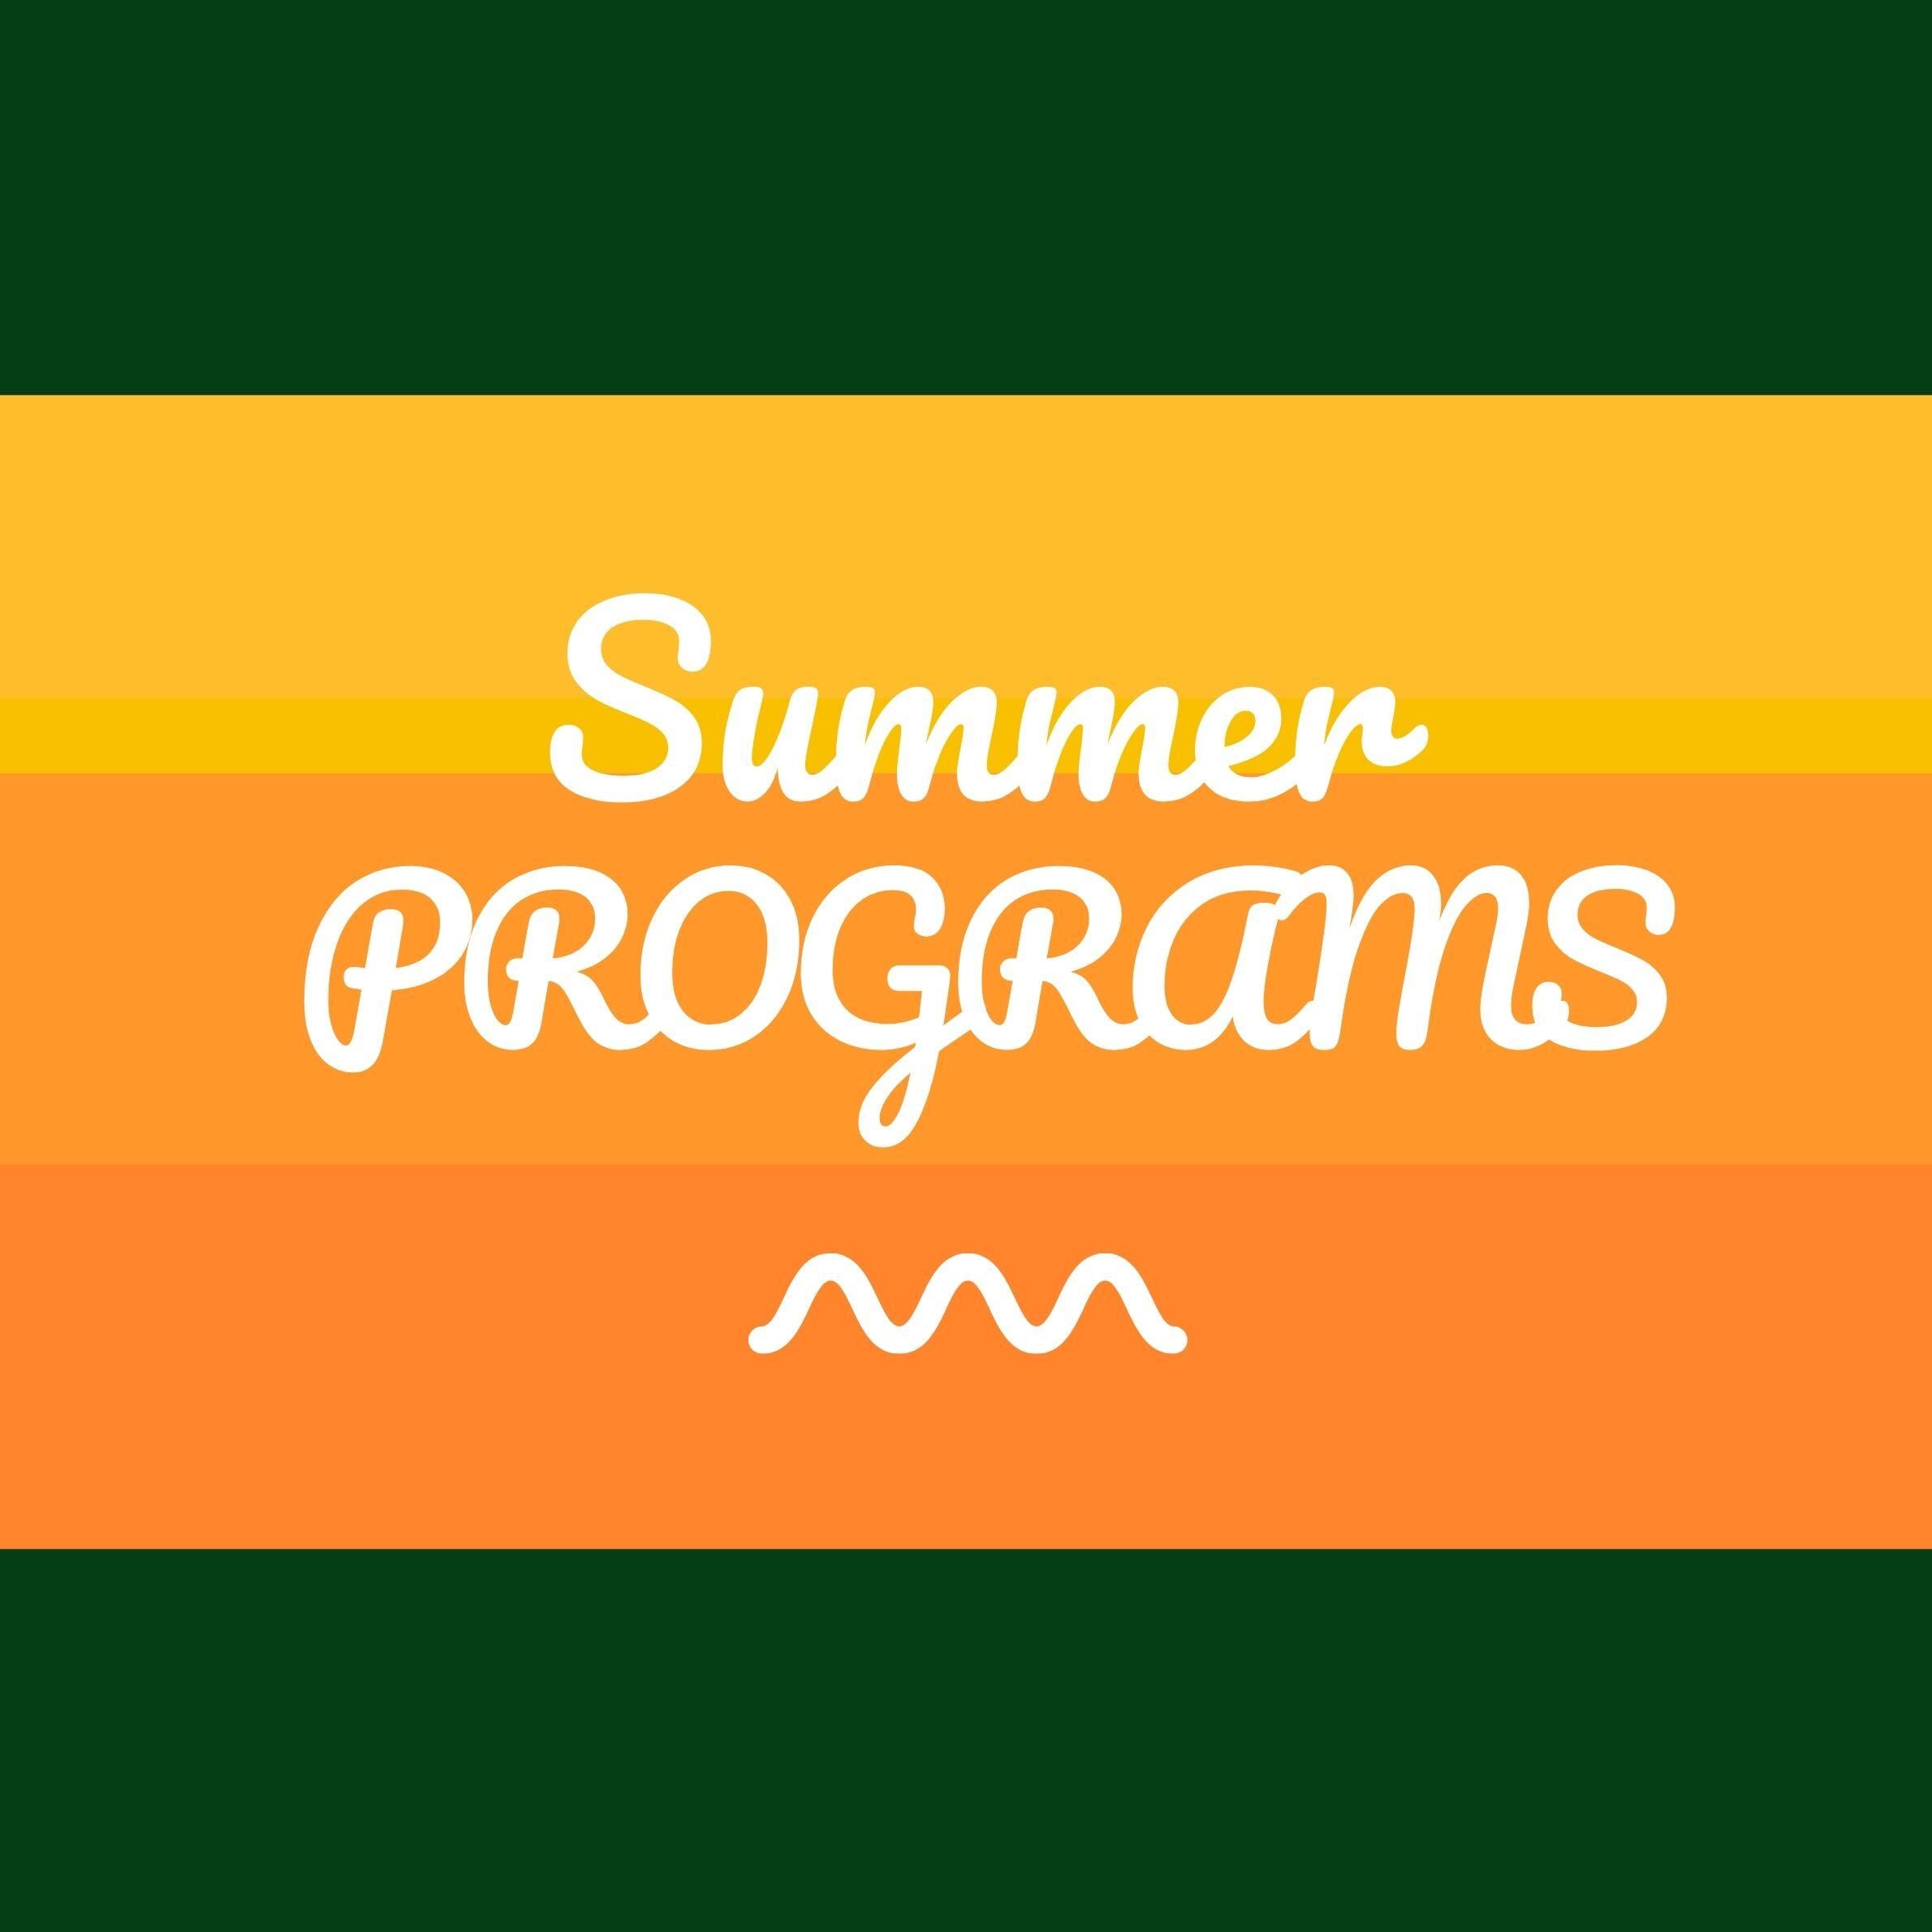 Summer Programs graphic